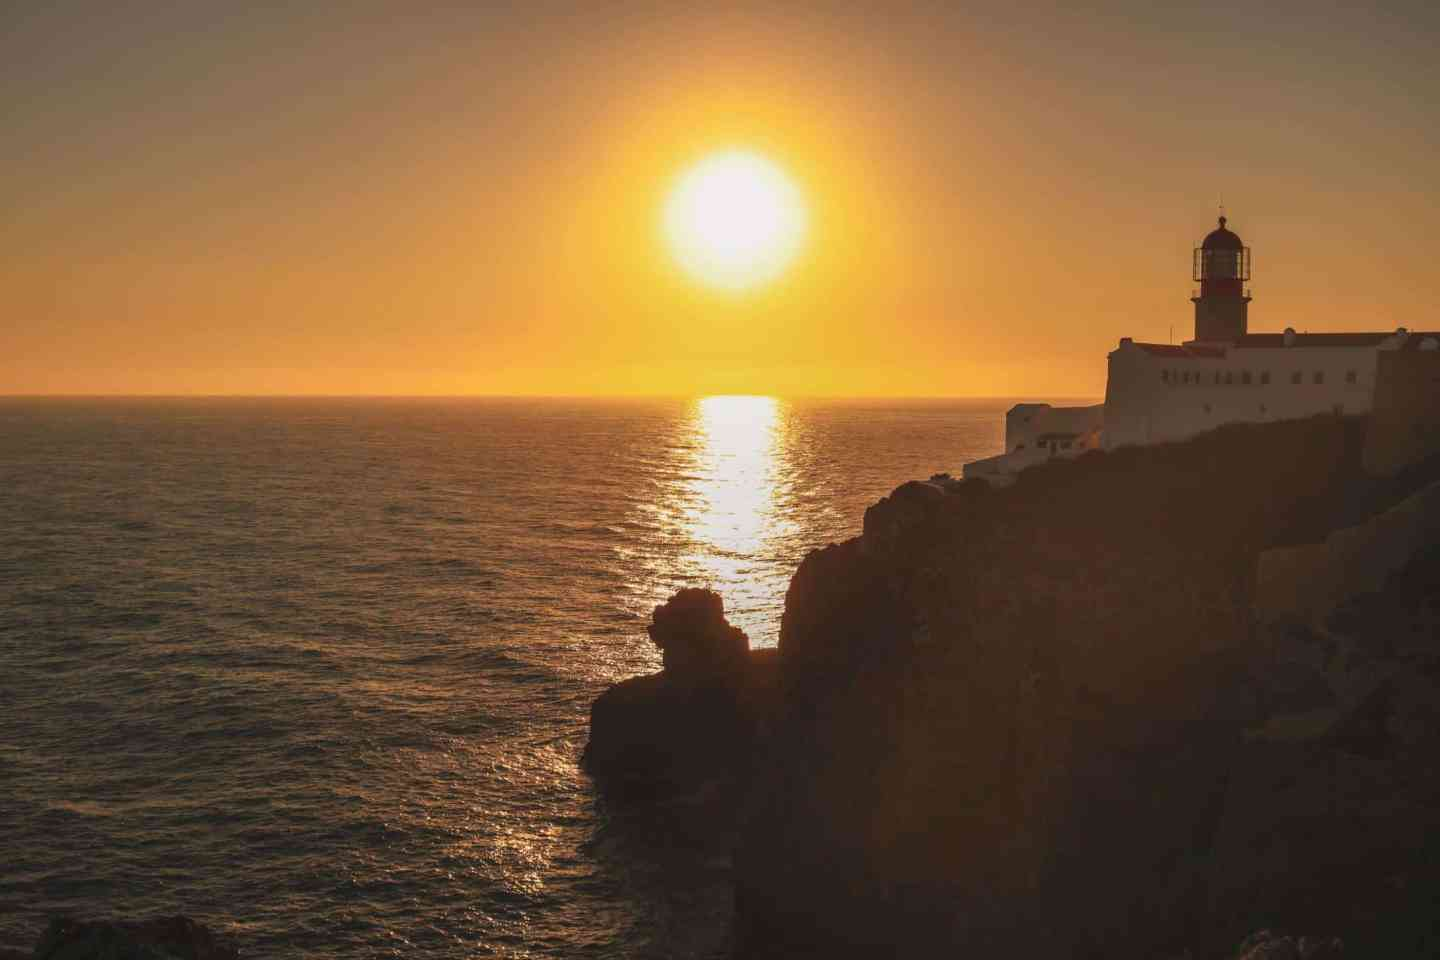 Sunset at cabo de sao vicente in algarve